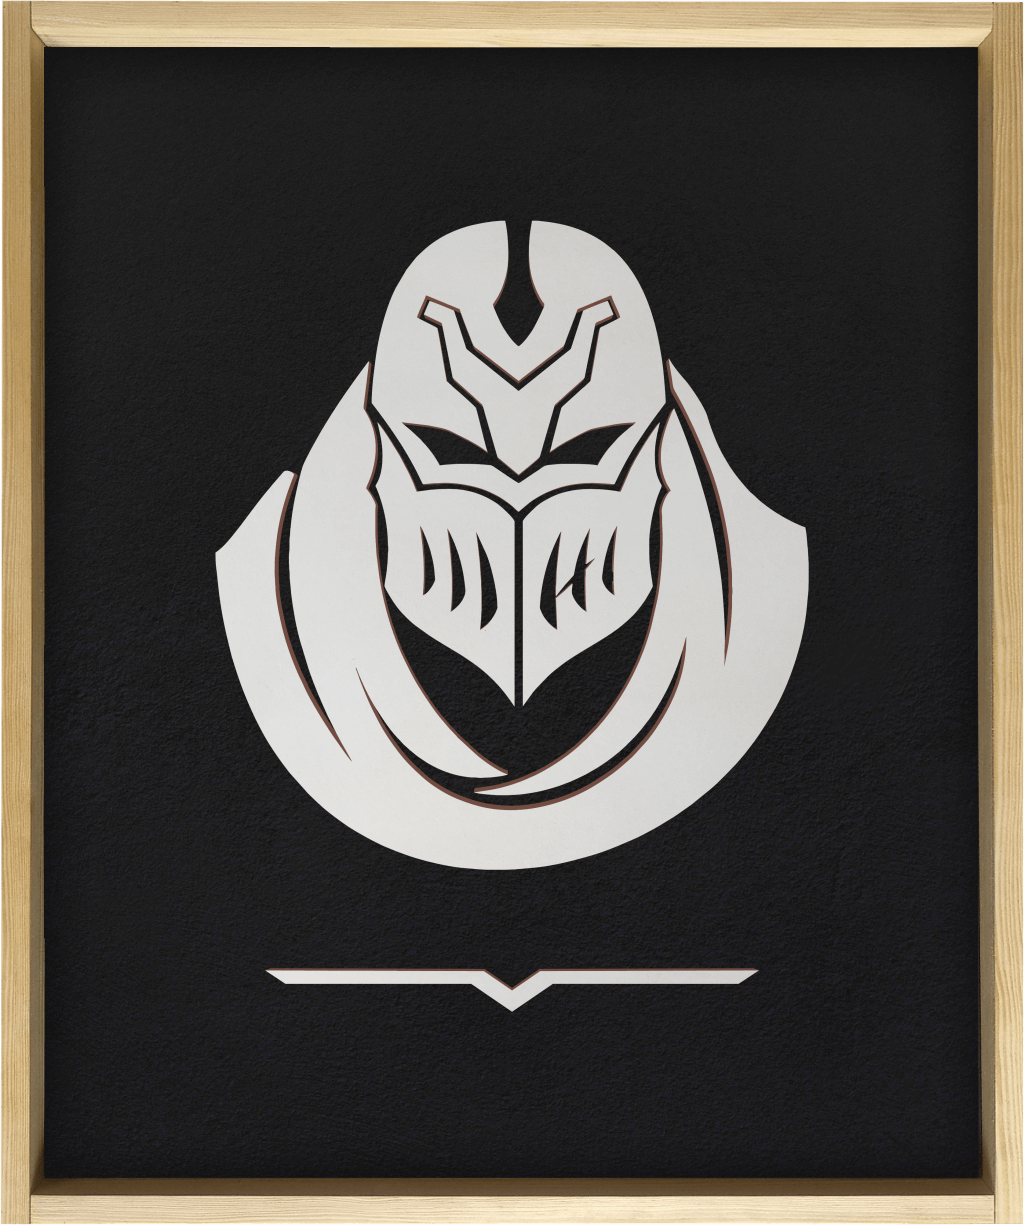 Zed - Wooden poster